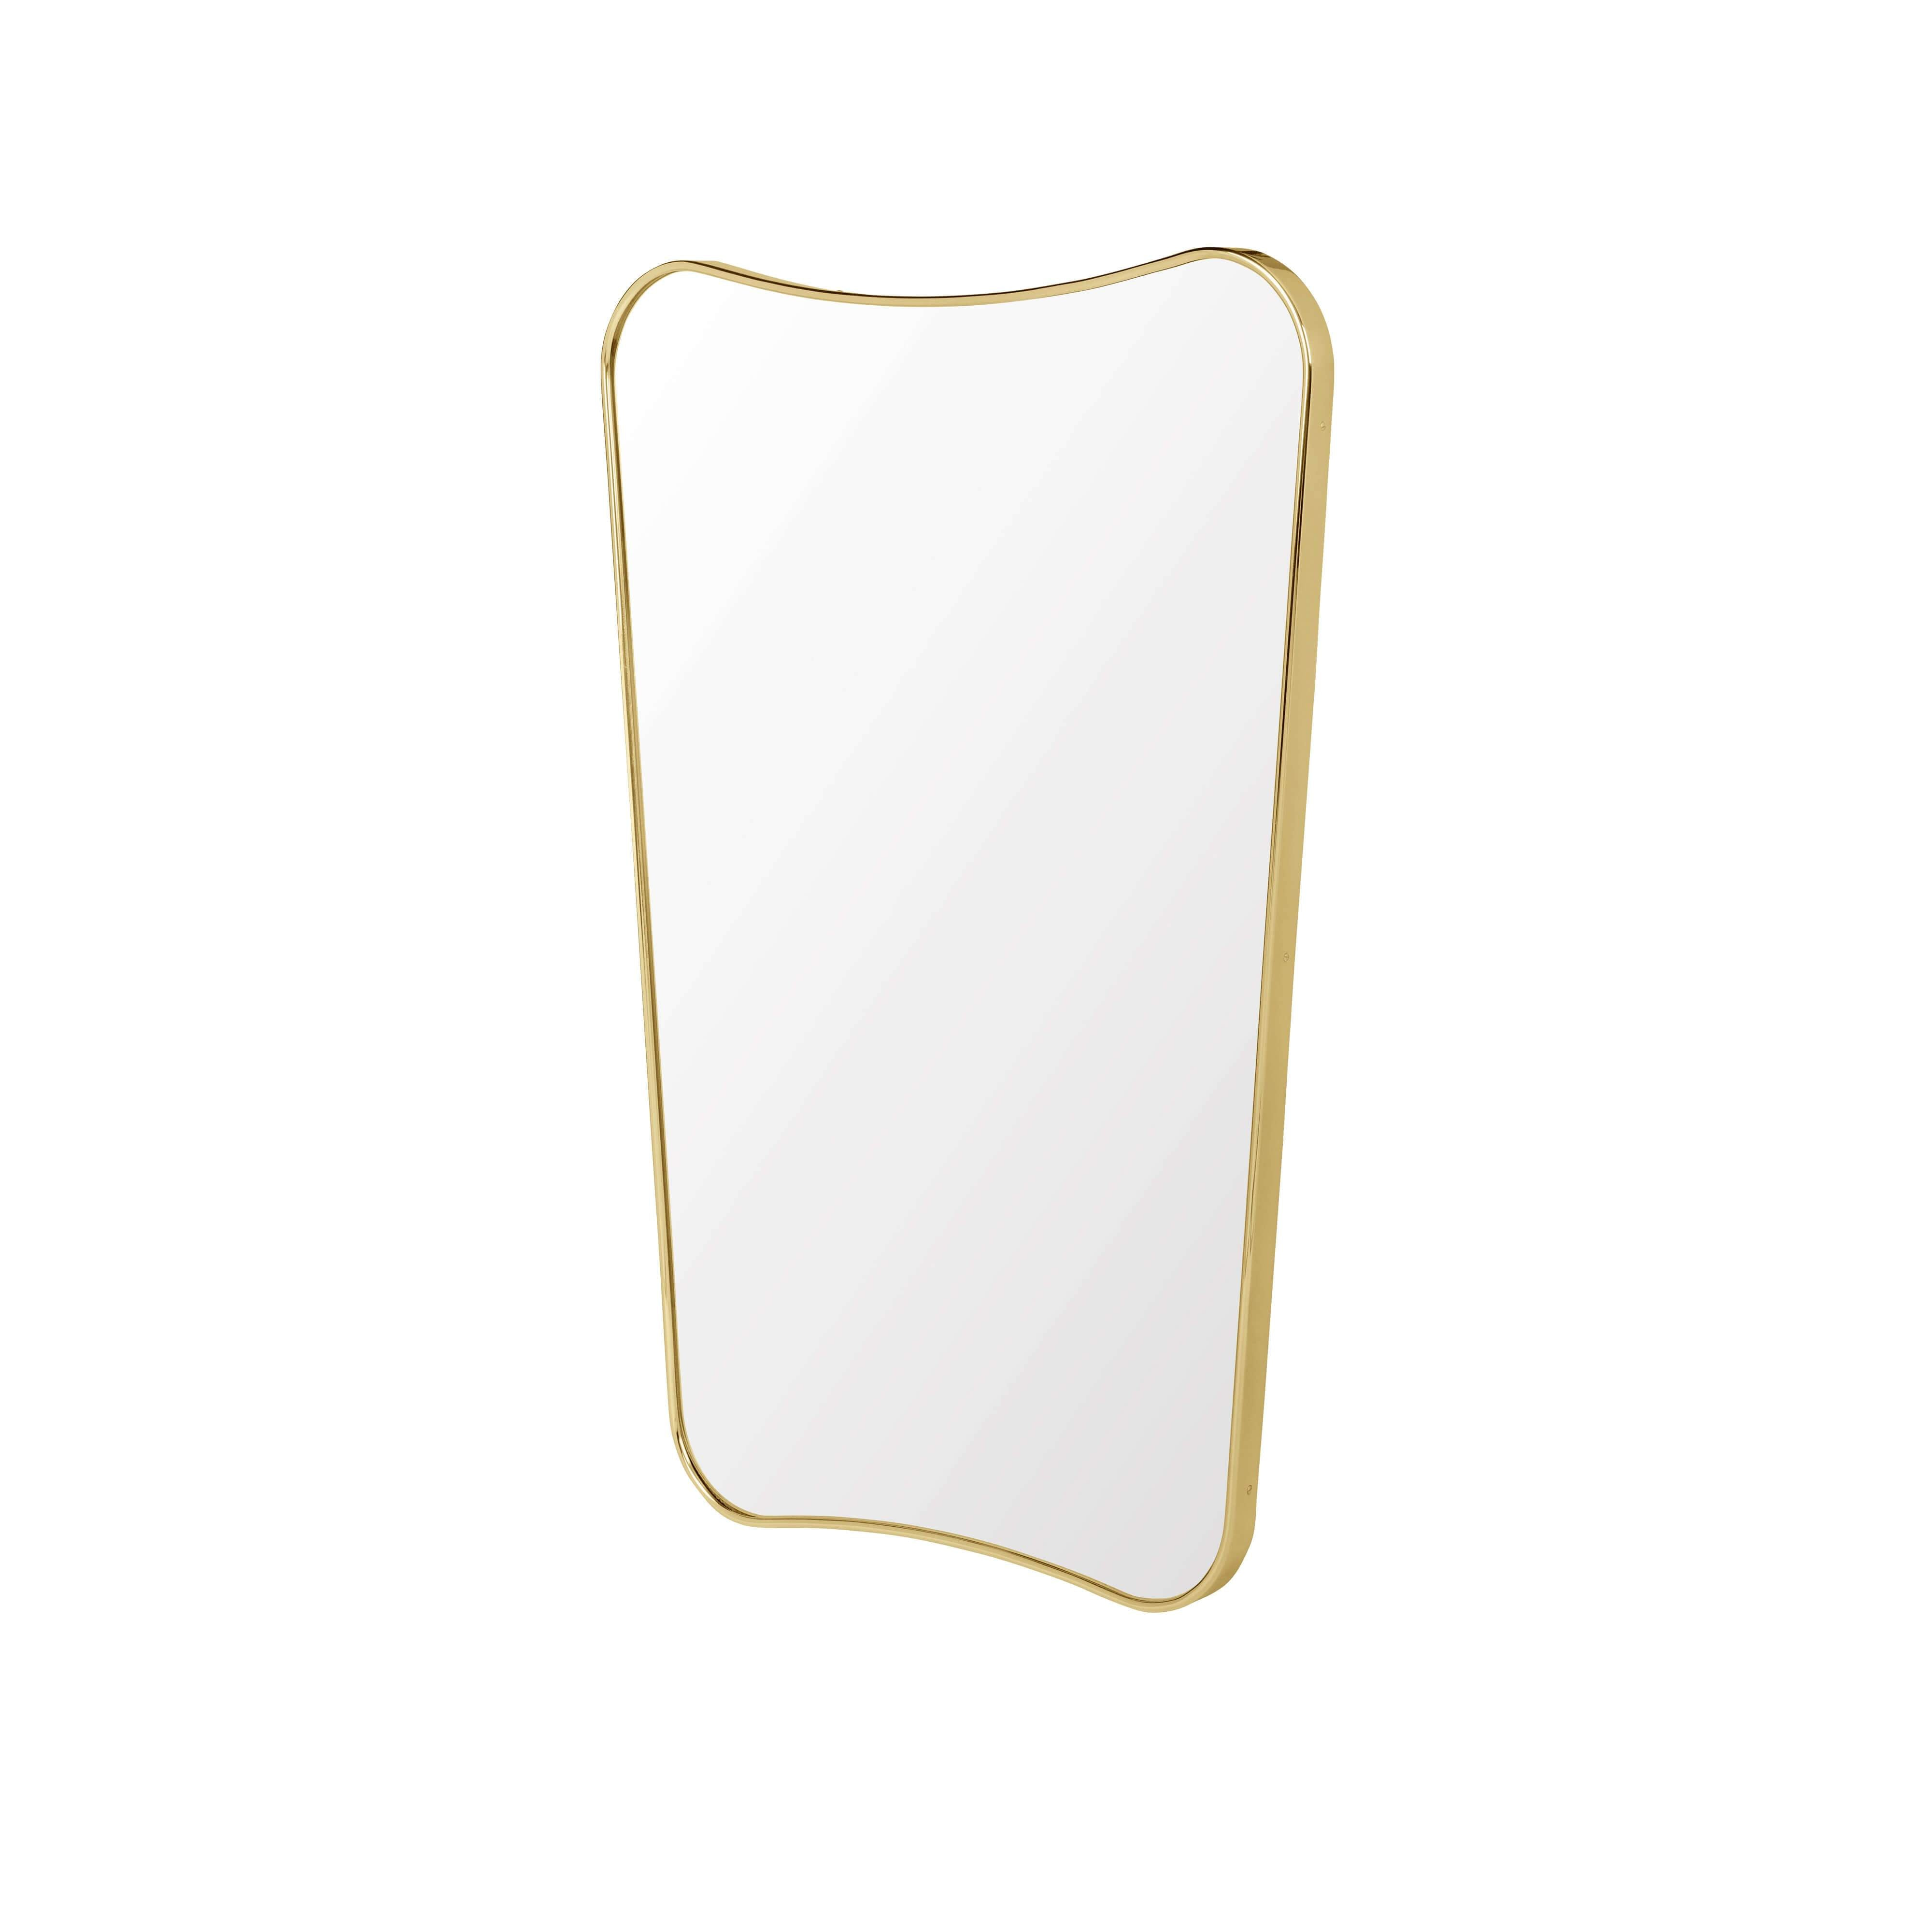 F.A. 33 Rectangular Wall Mirror: Small + Polished Brass